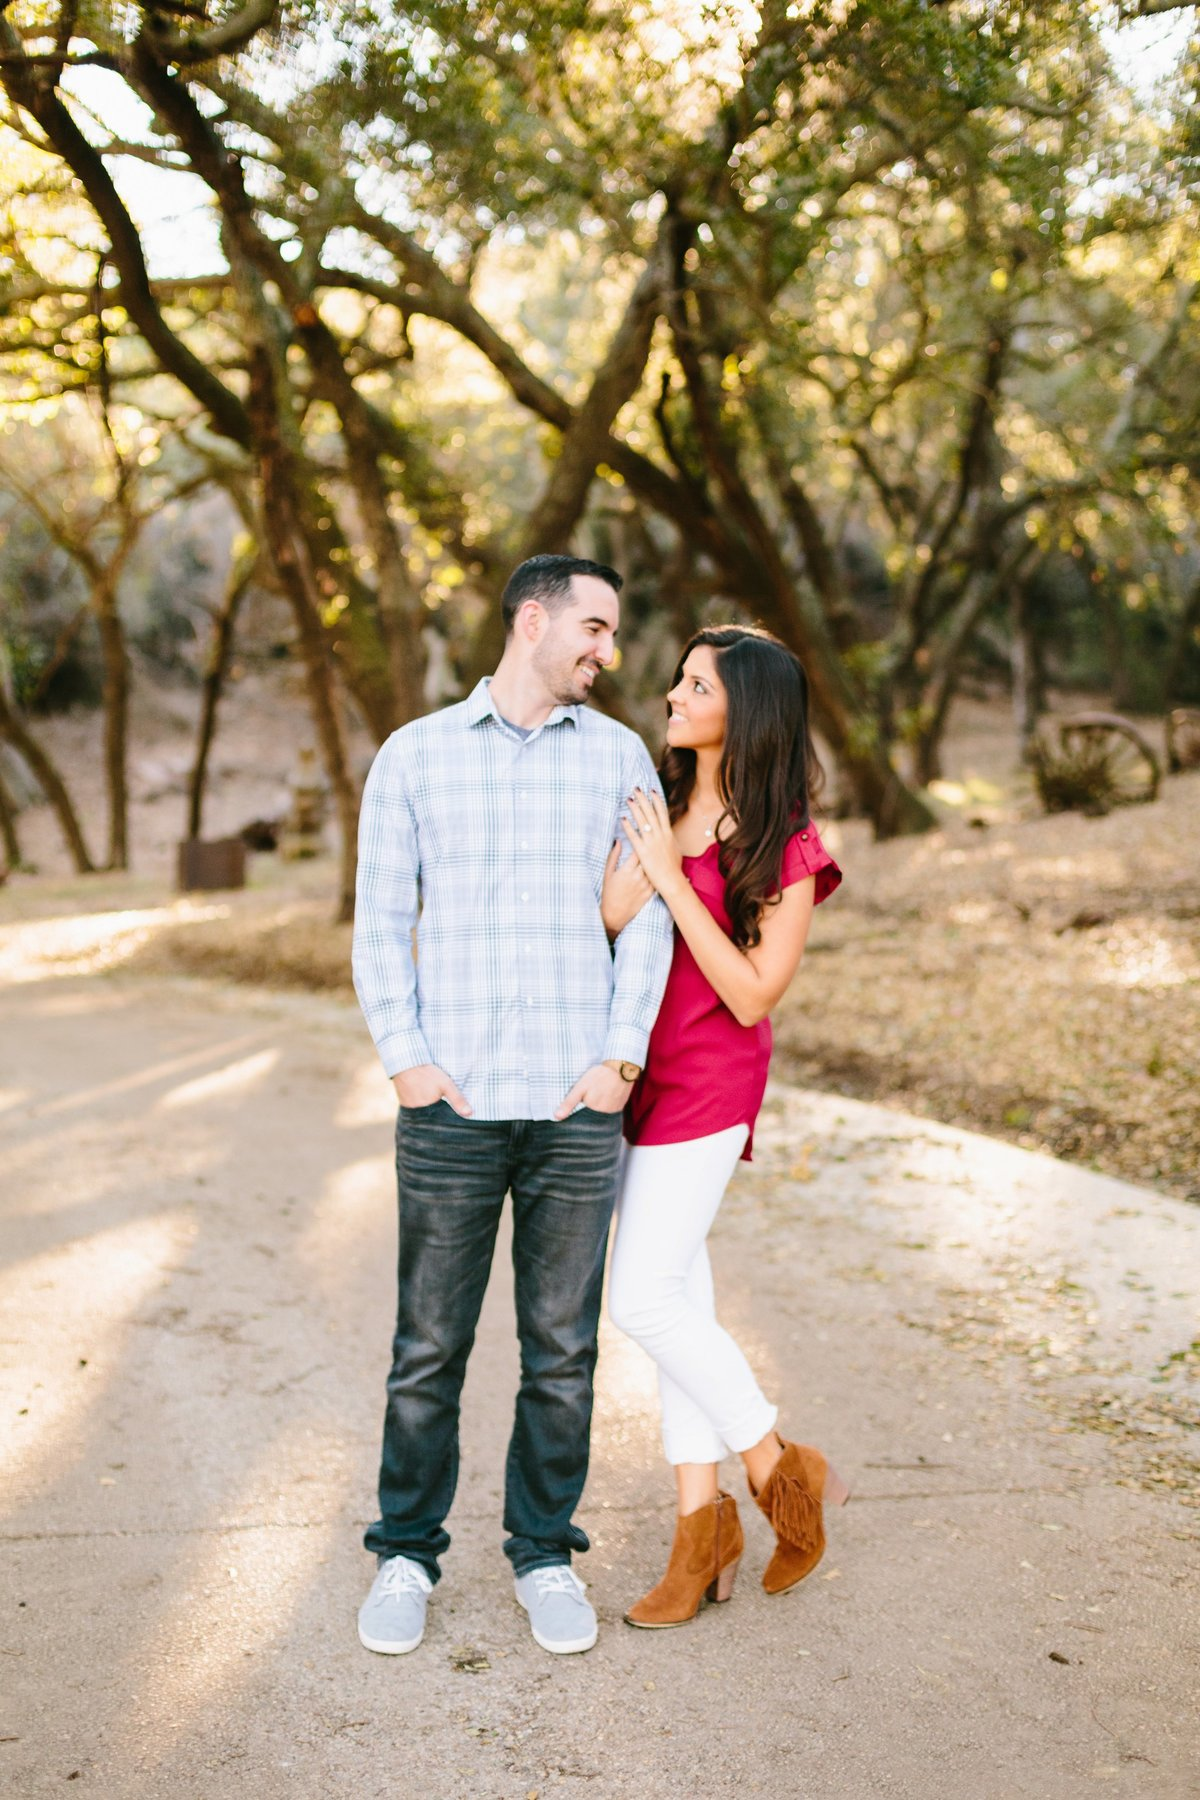 Engagement Photos-Jodee Debes Photography-114